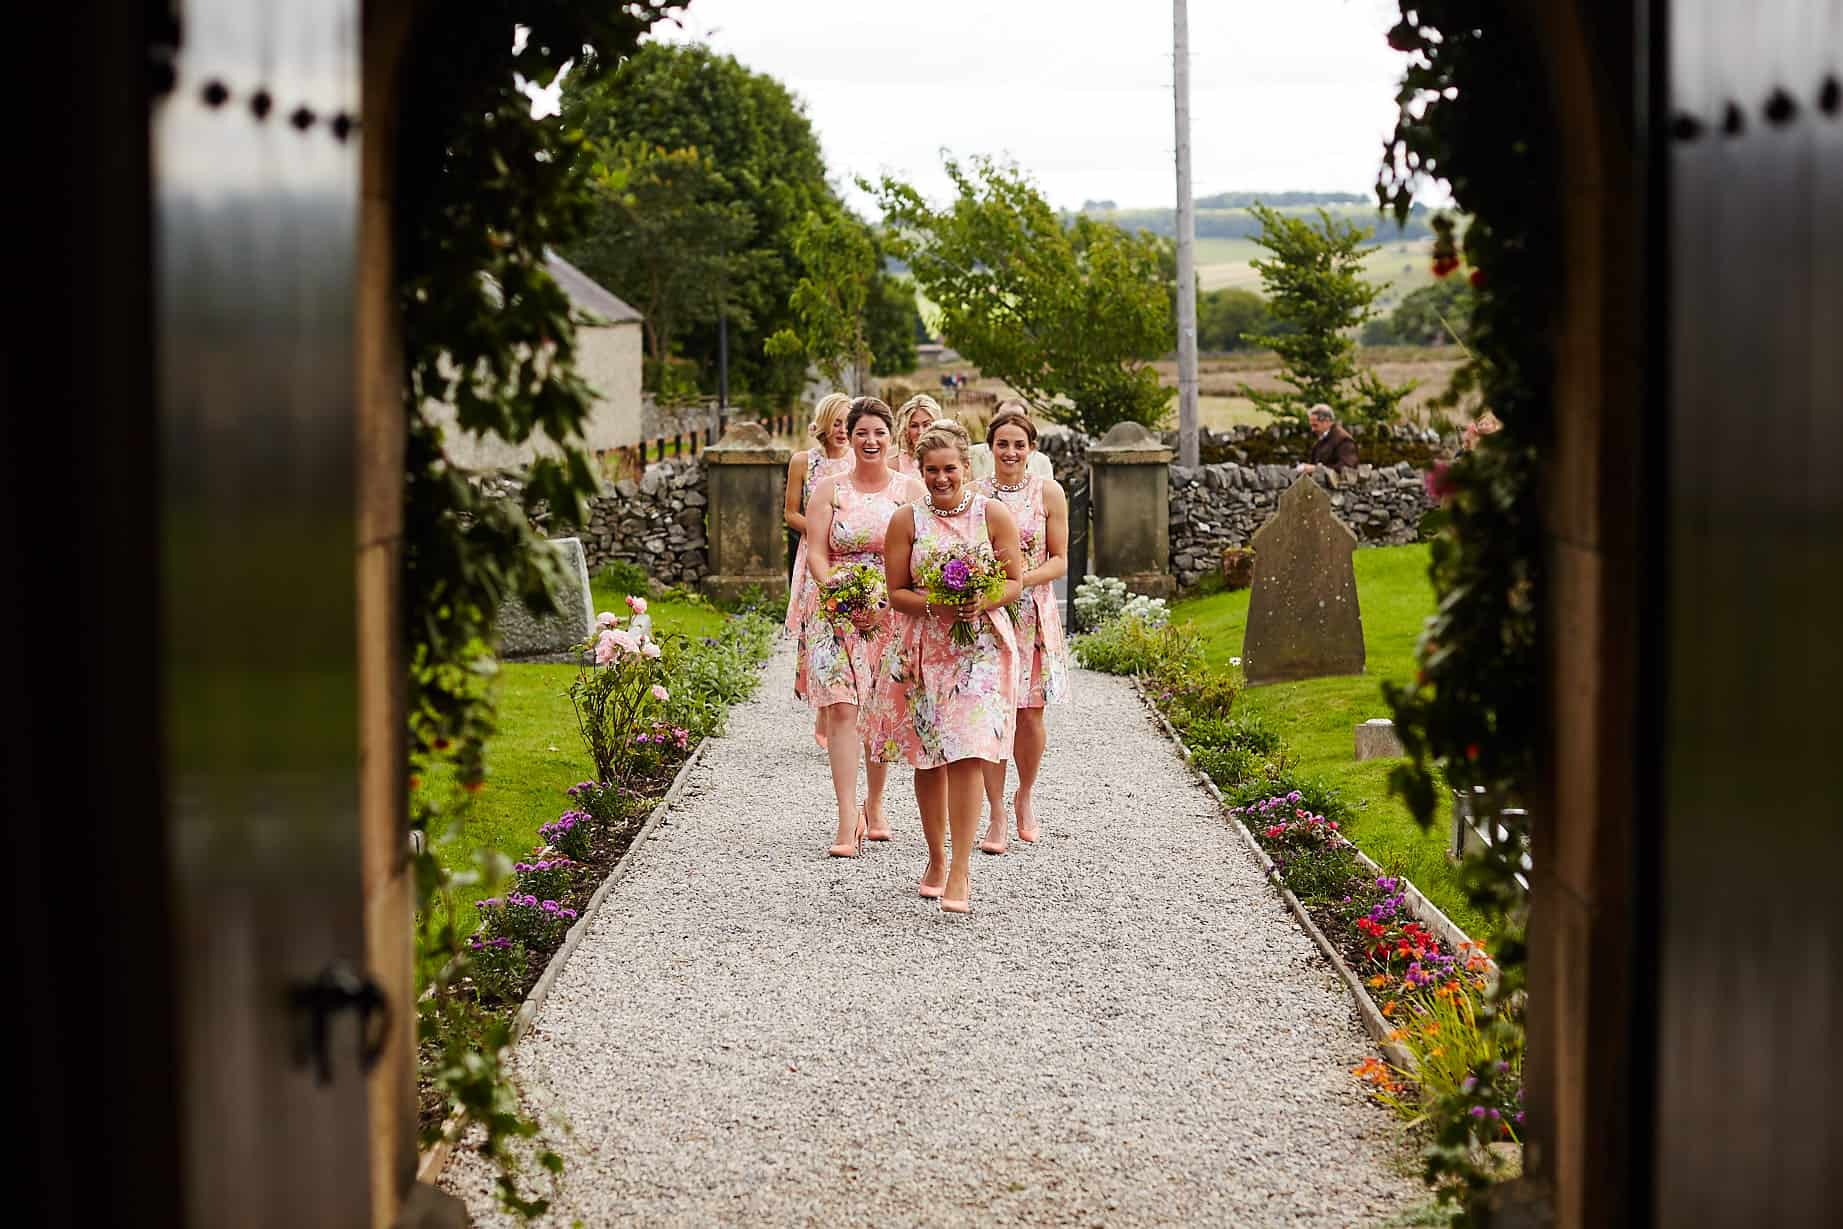 Floral bridesmaid dresses - Sami Tipi Wedding captured by Ben Pollard